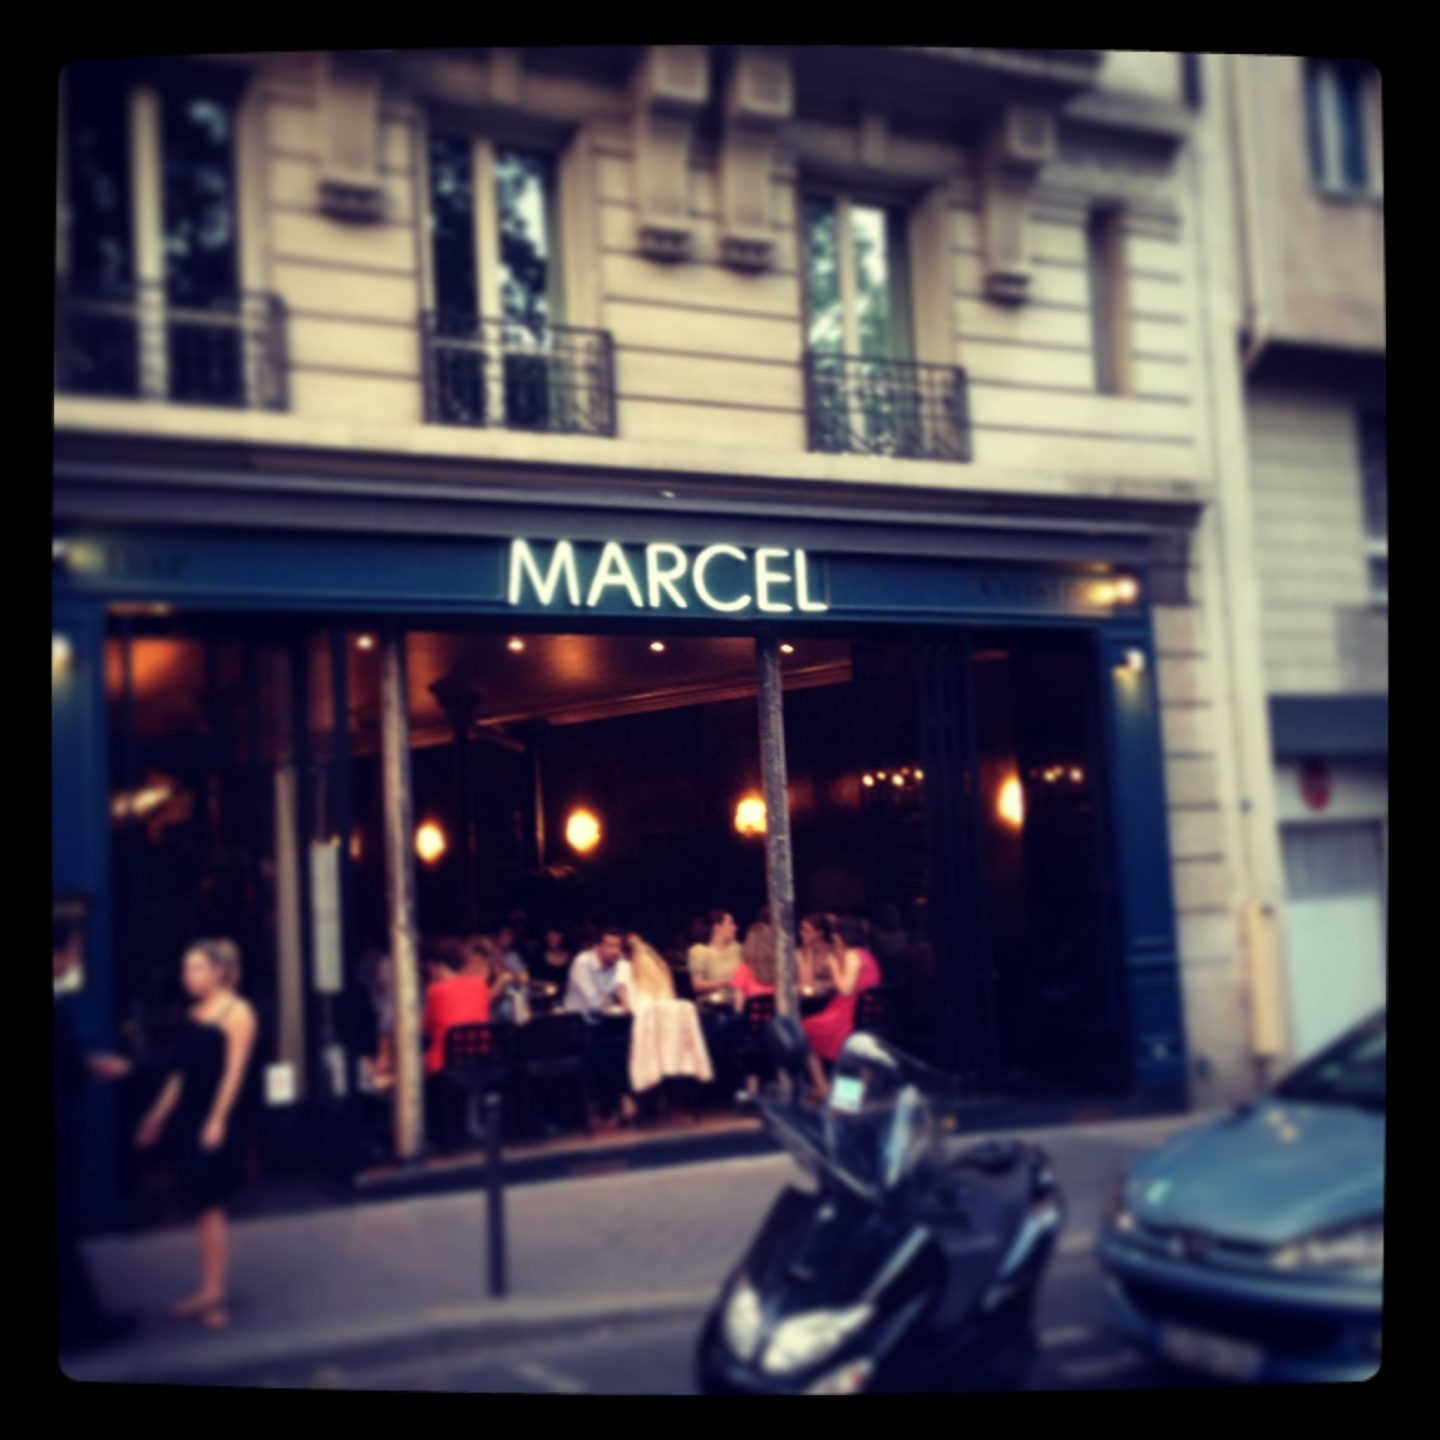 Marcel (Anti Solo Diners)